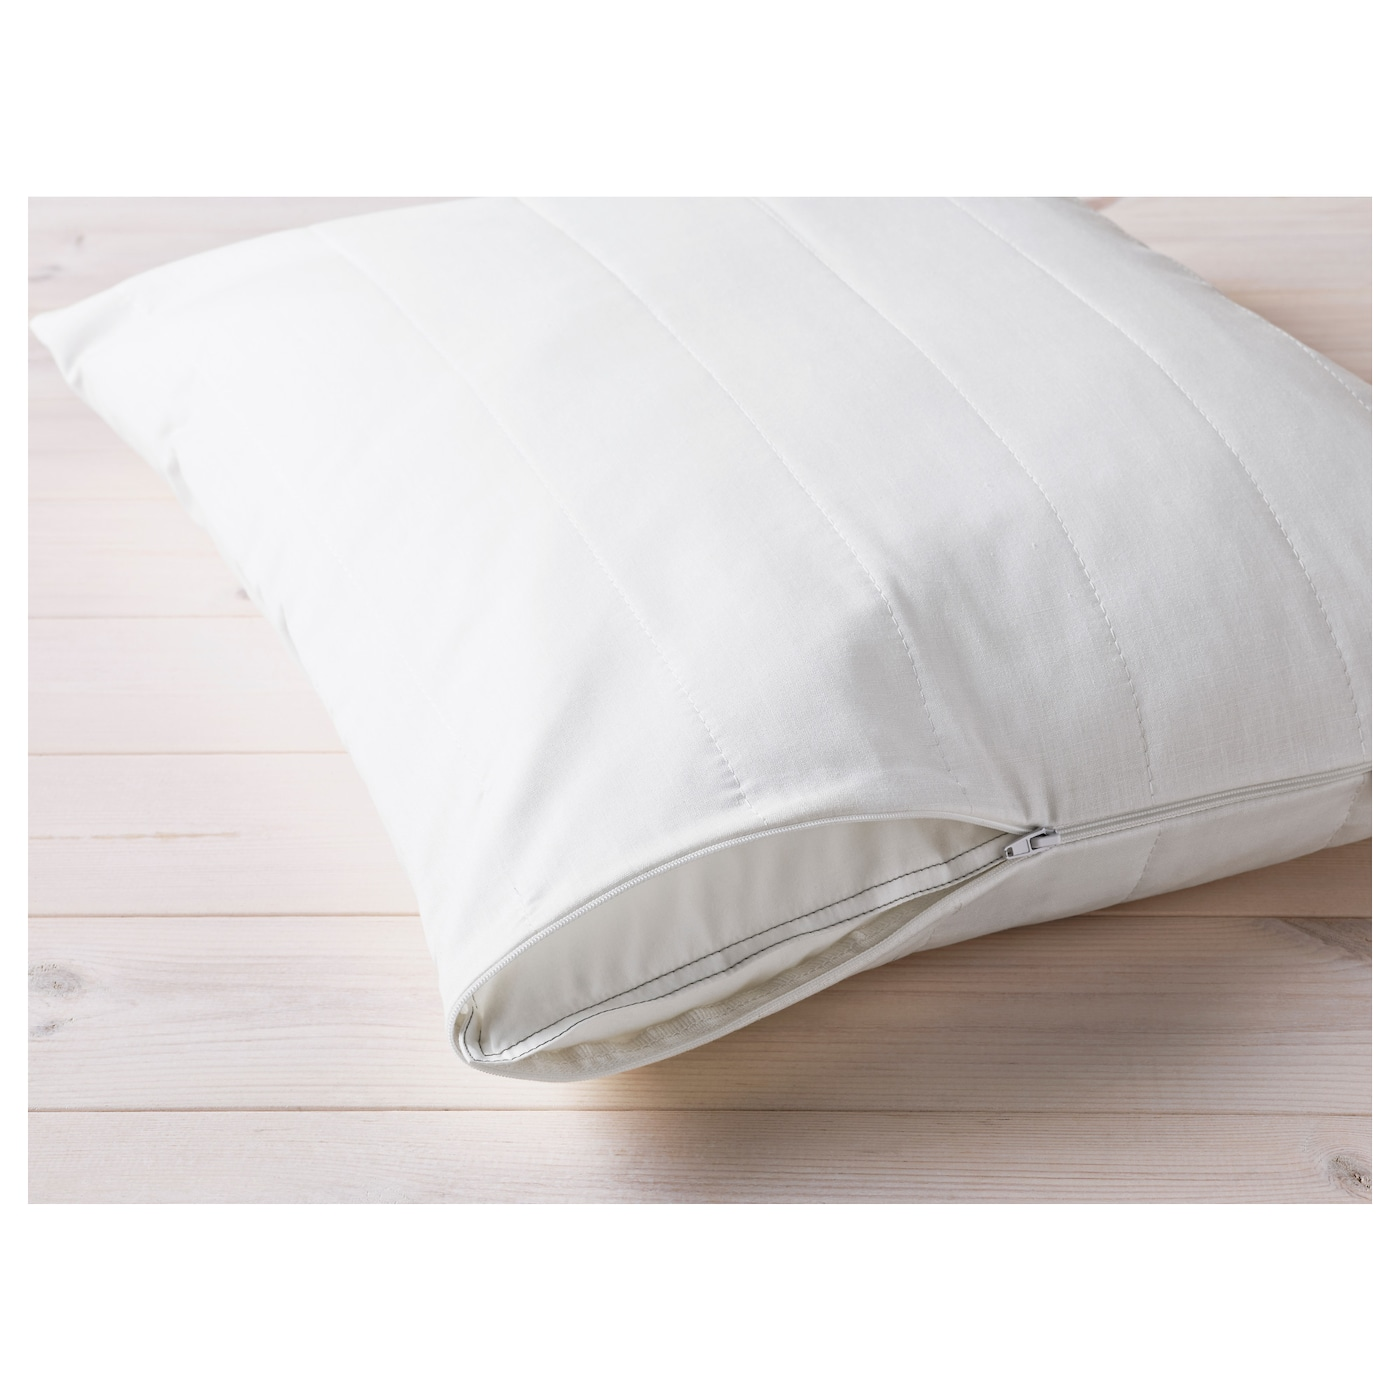 IKEA ÄNGSVIDE pillow protector